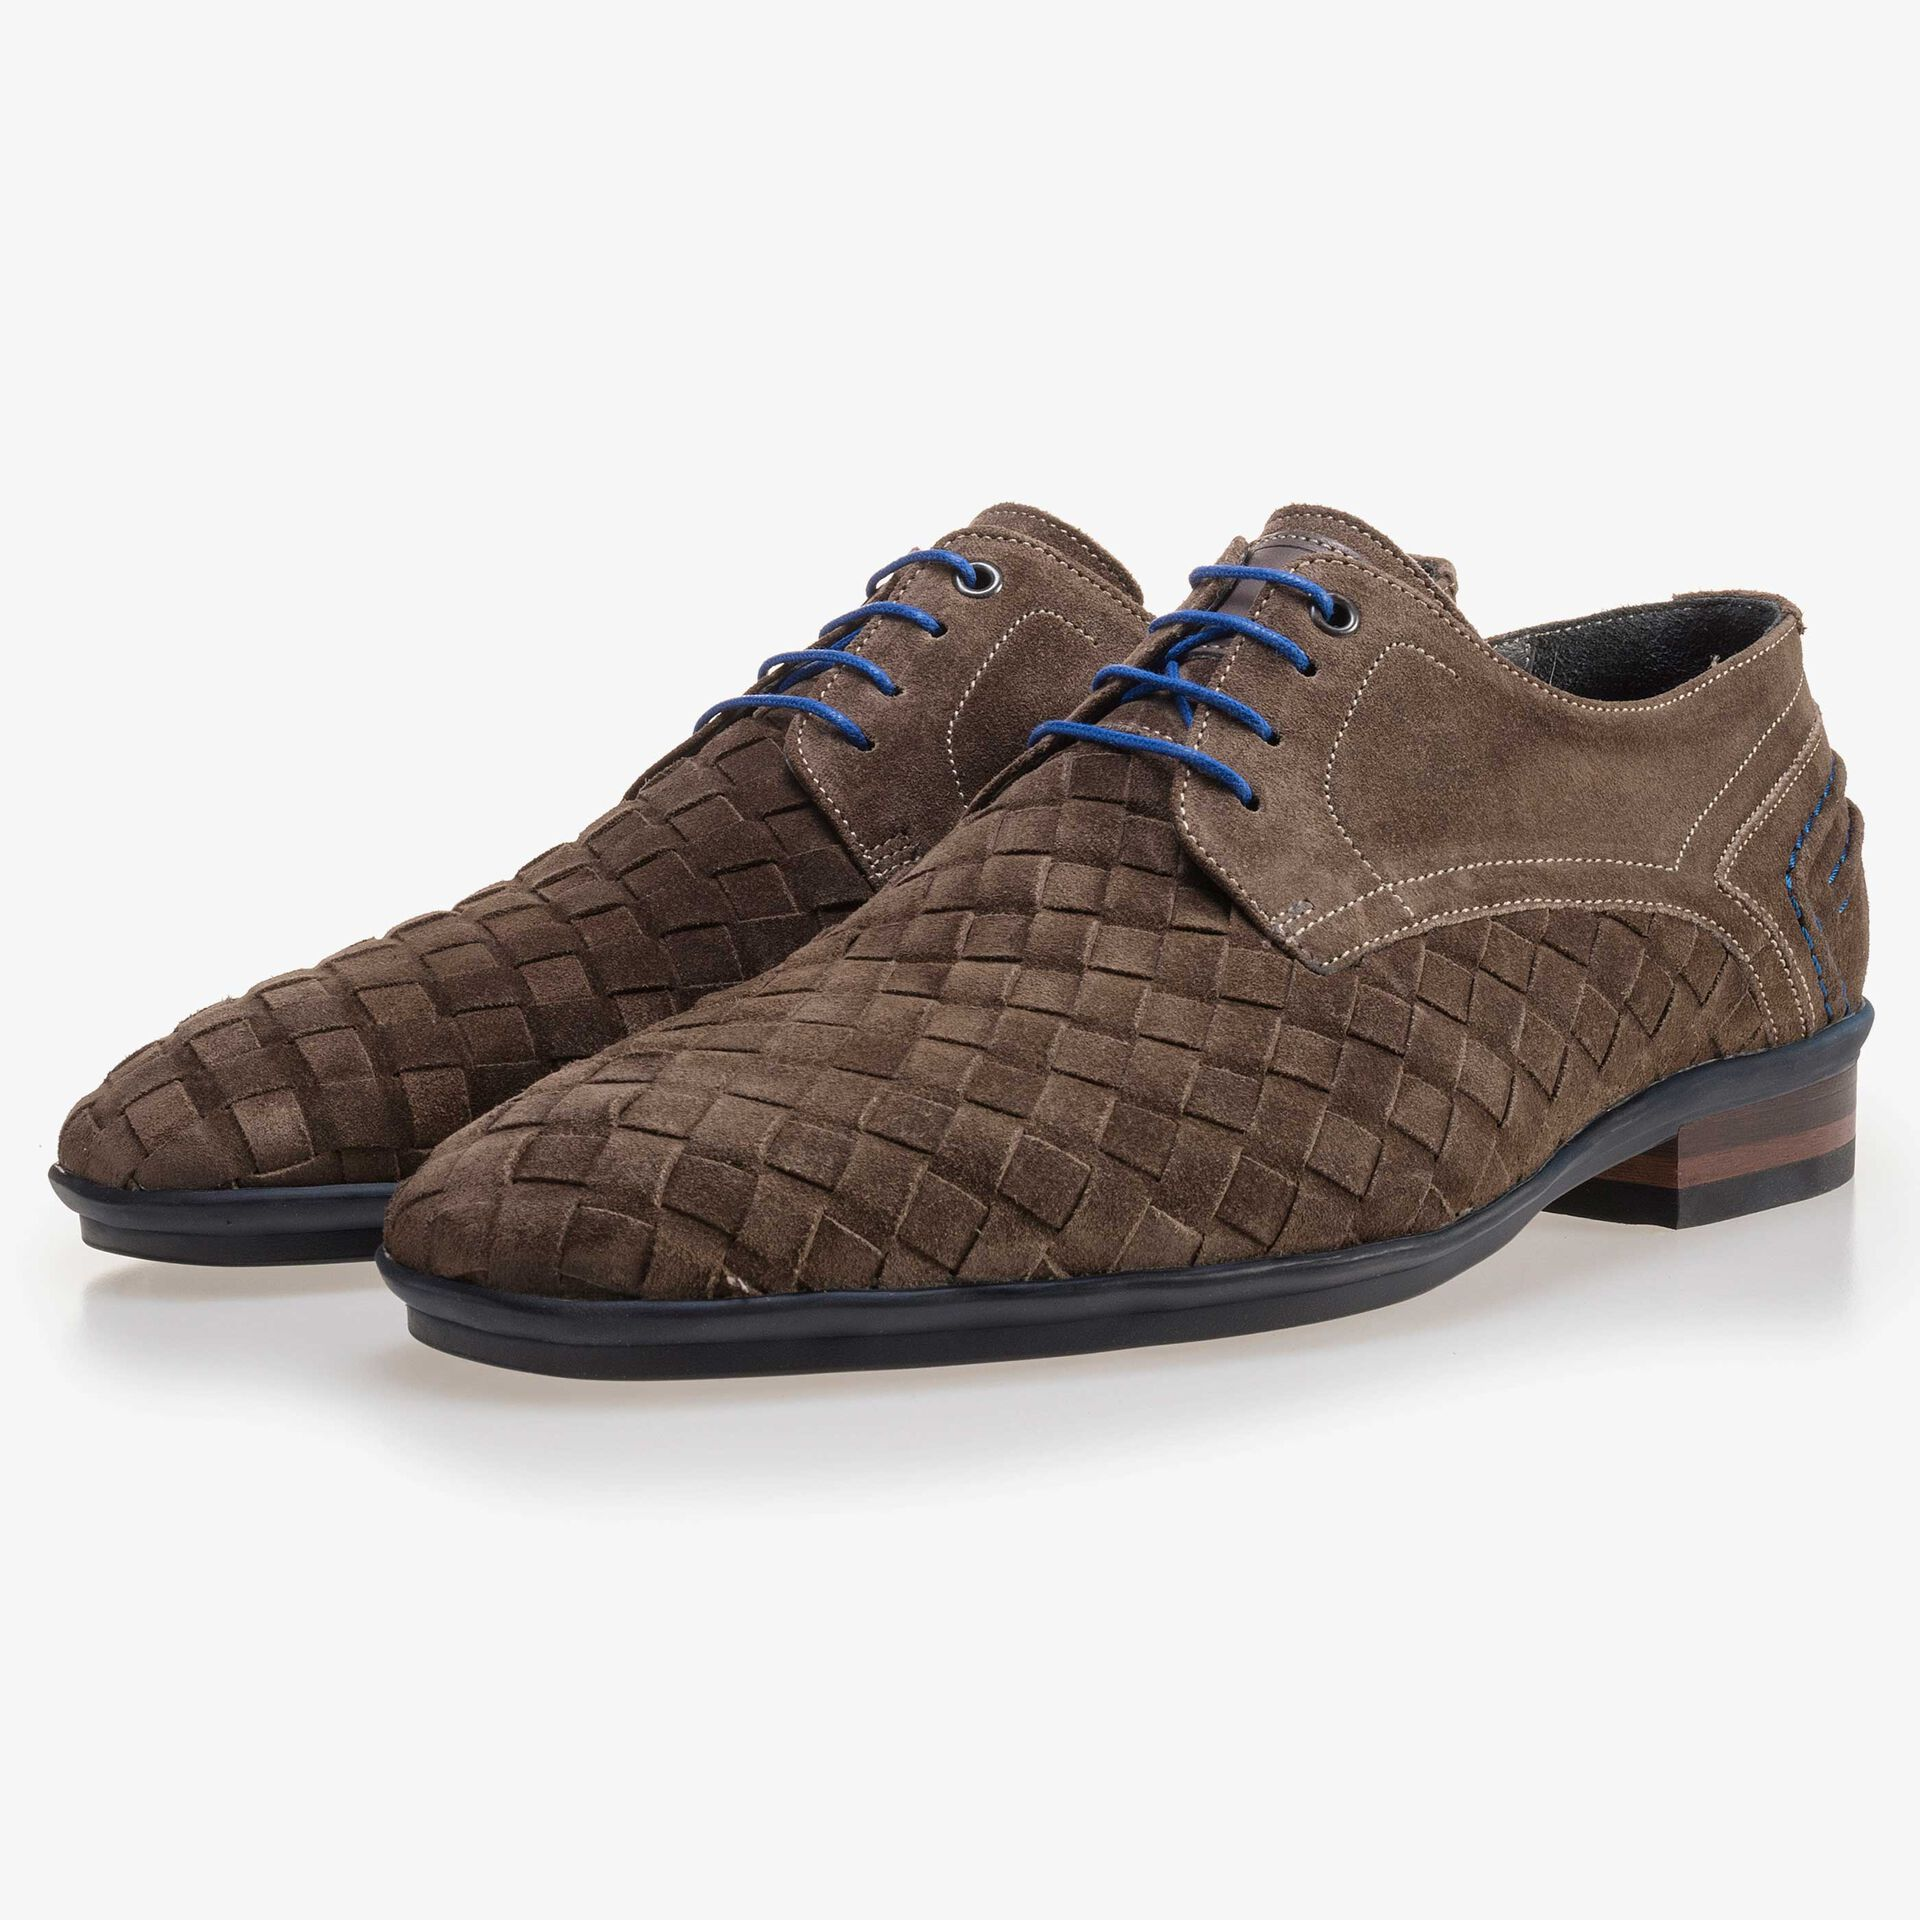 Lace shoe made of braided leather dark taupe